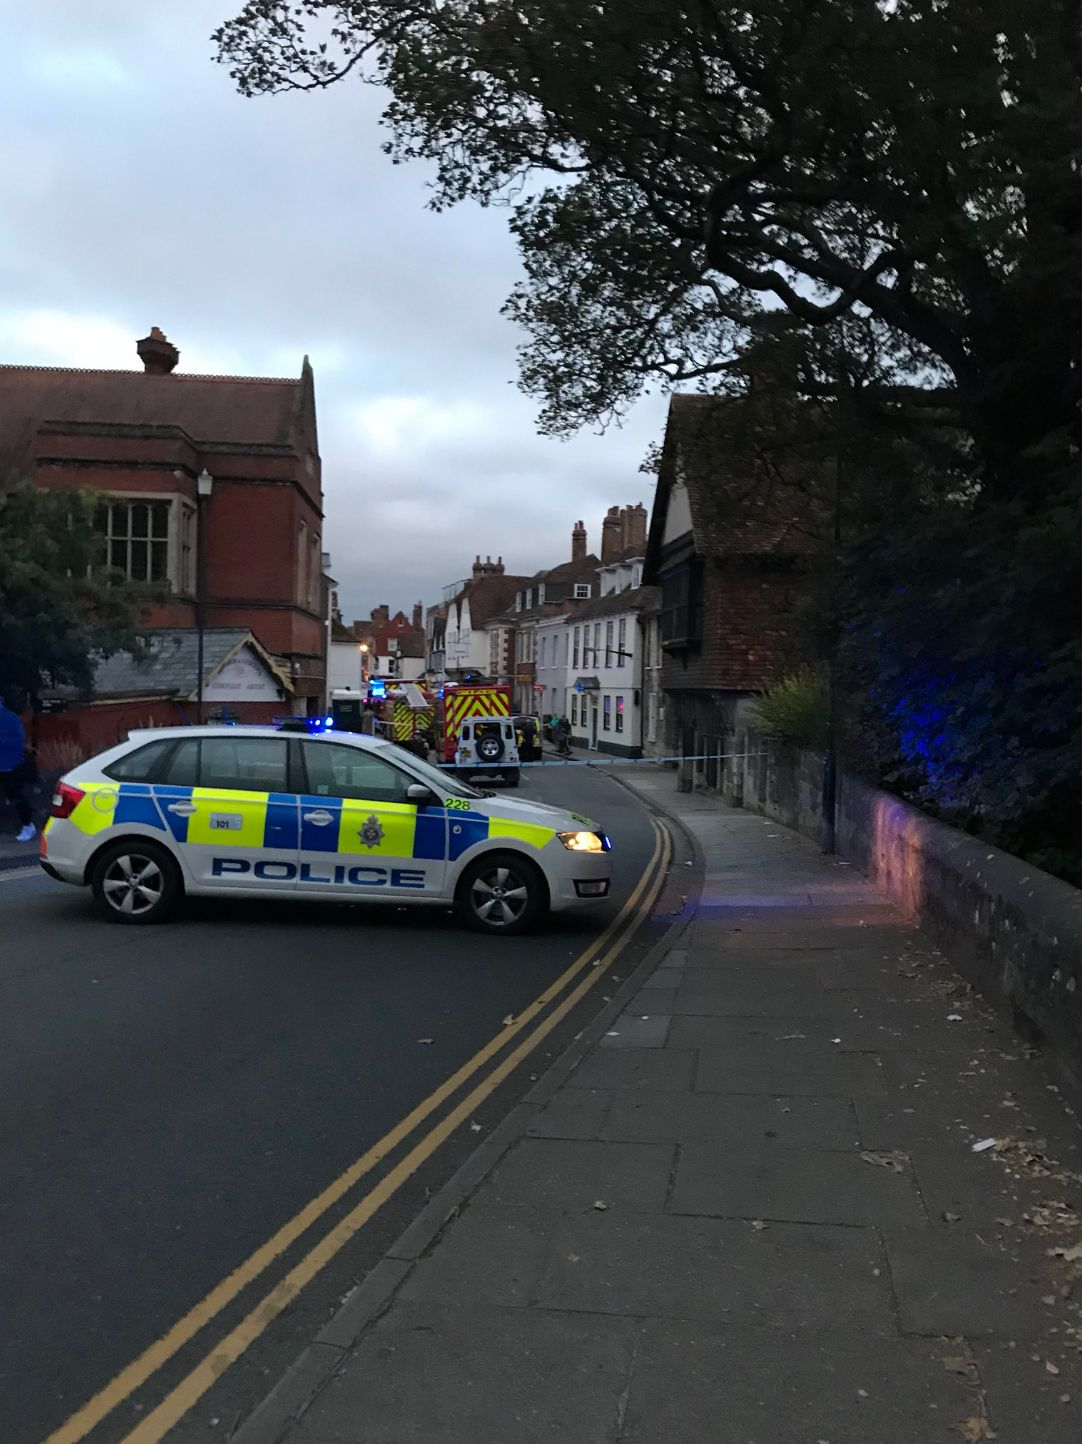 Novichok Ruled Out After Two People Fall Ill In